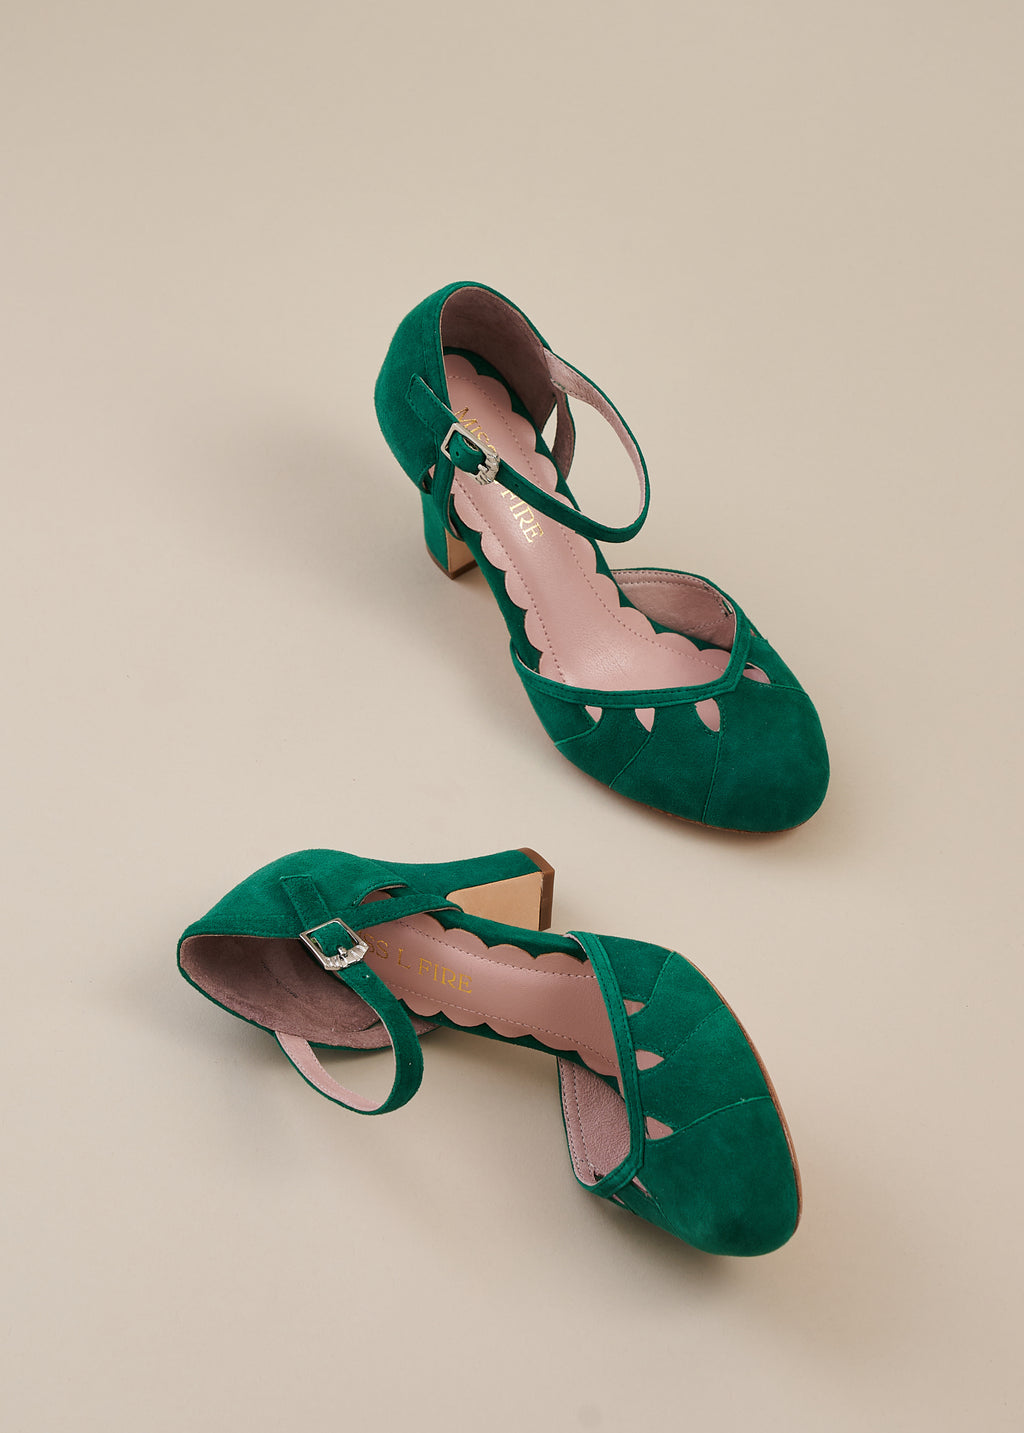 Lucie Kelly Green Suede Two Part Panelled Bar Shoe - LAST REMAINING PAIRS